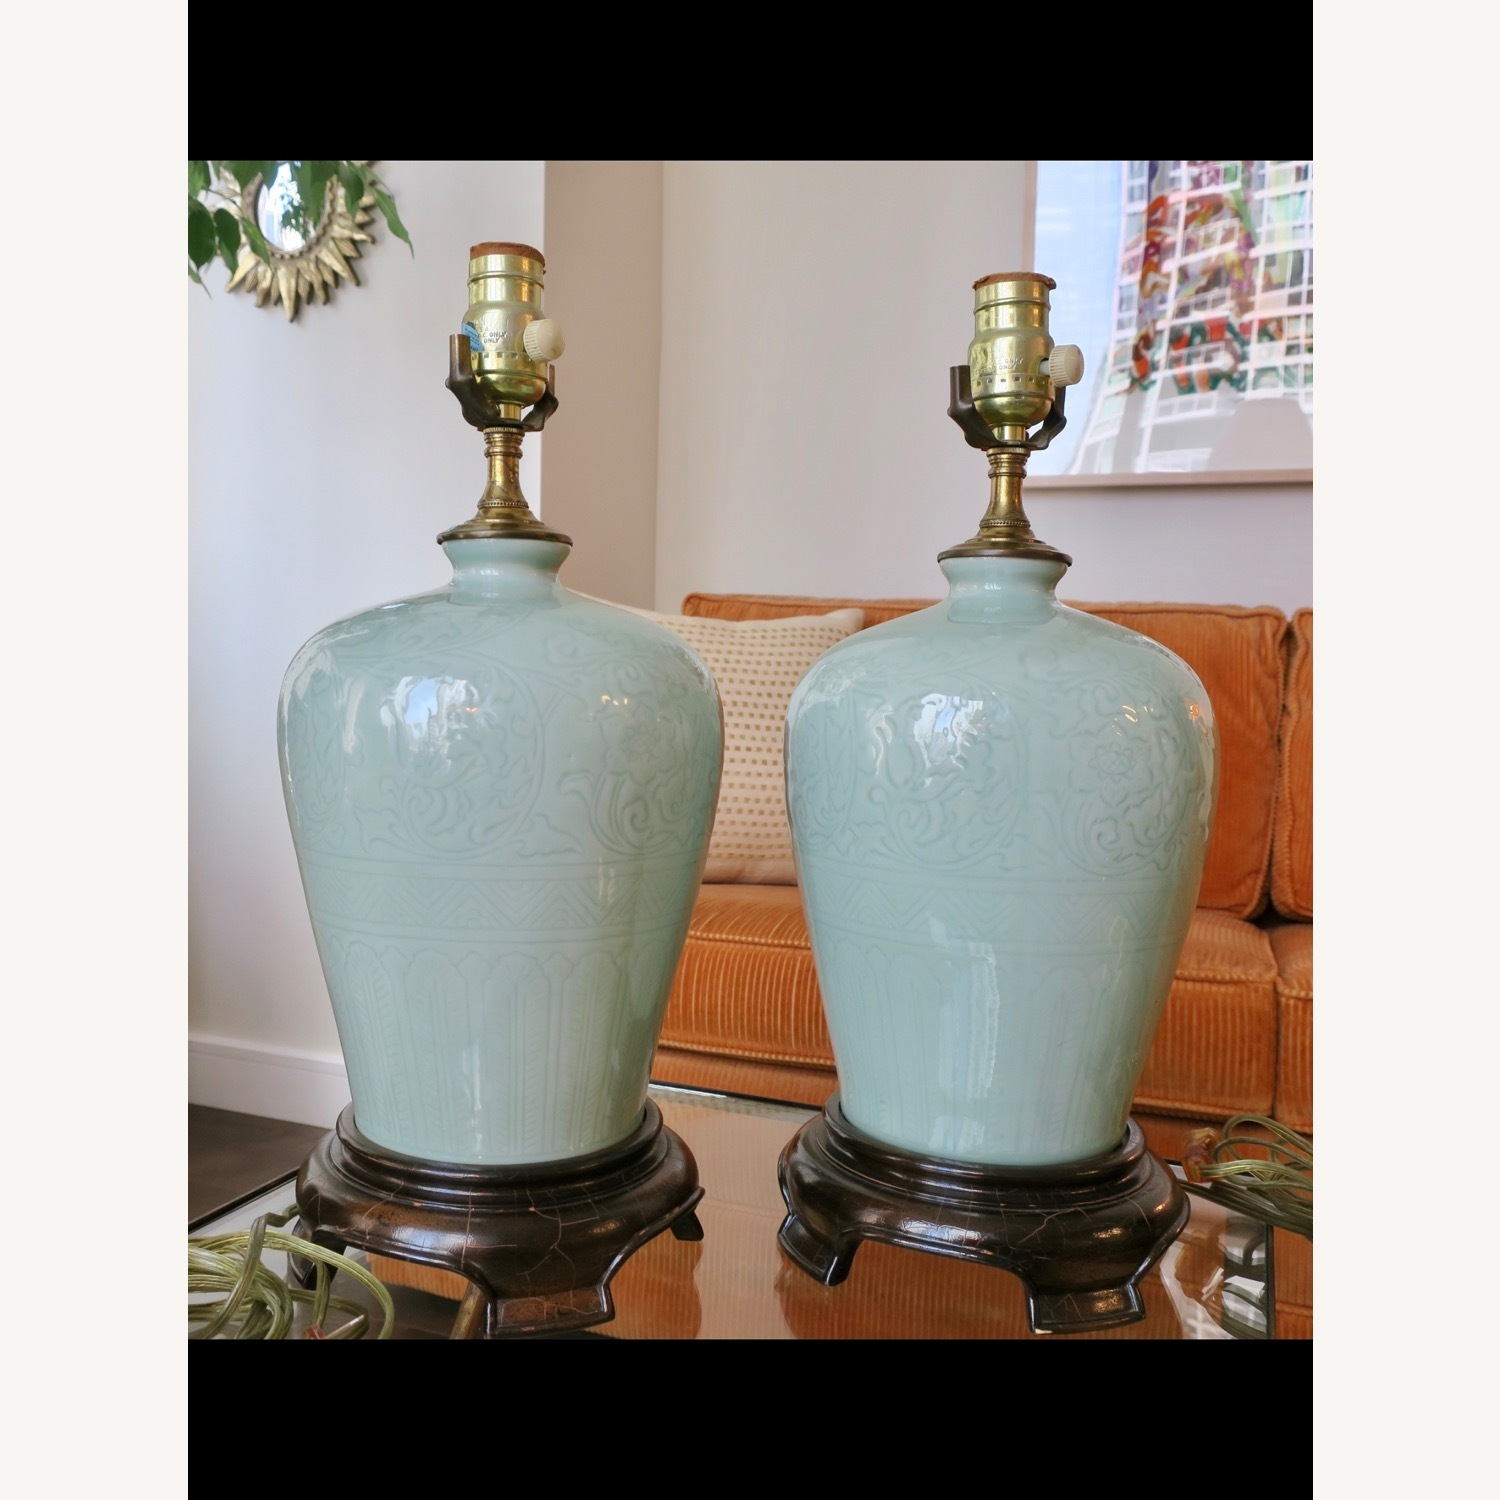 Celadon Ceramic Asian Table Lamps - image-1